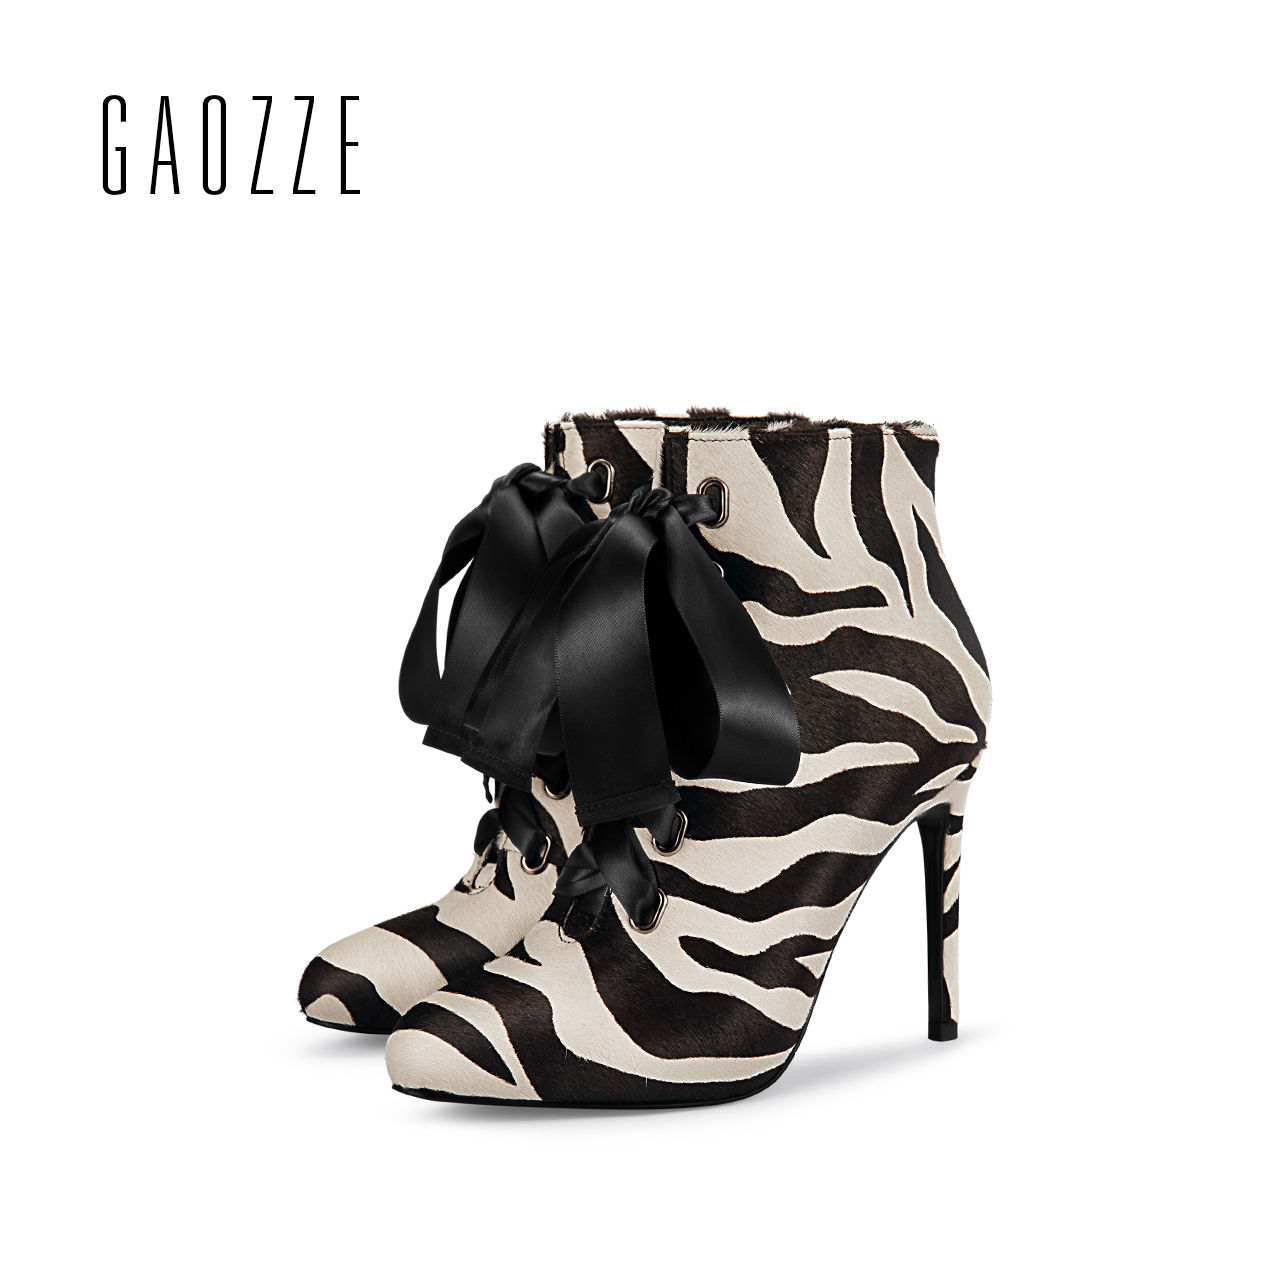 GAOZZE fashion ankle boots for women side zipper ankle boots female sexy high-heeled Leopard horse hair boots 2017 autumn gaozze autumn ankle boots for women 2017 new sexy thin high heeled boots women side zipper fashion pointed toe shoes red boots